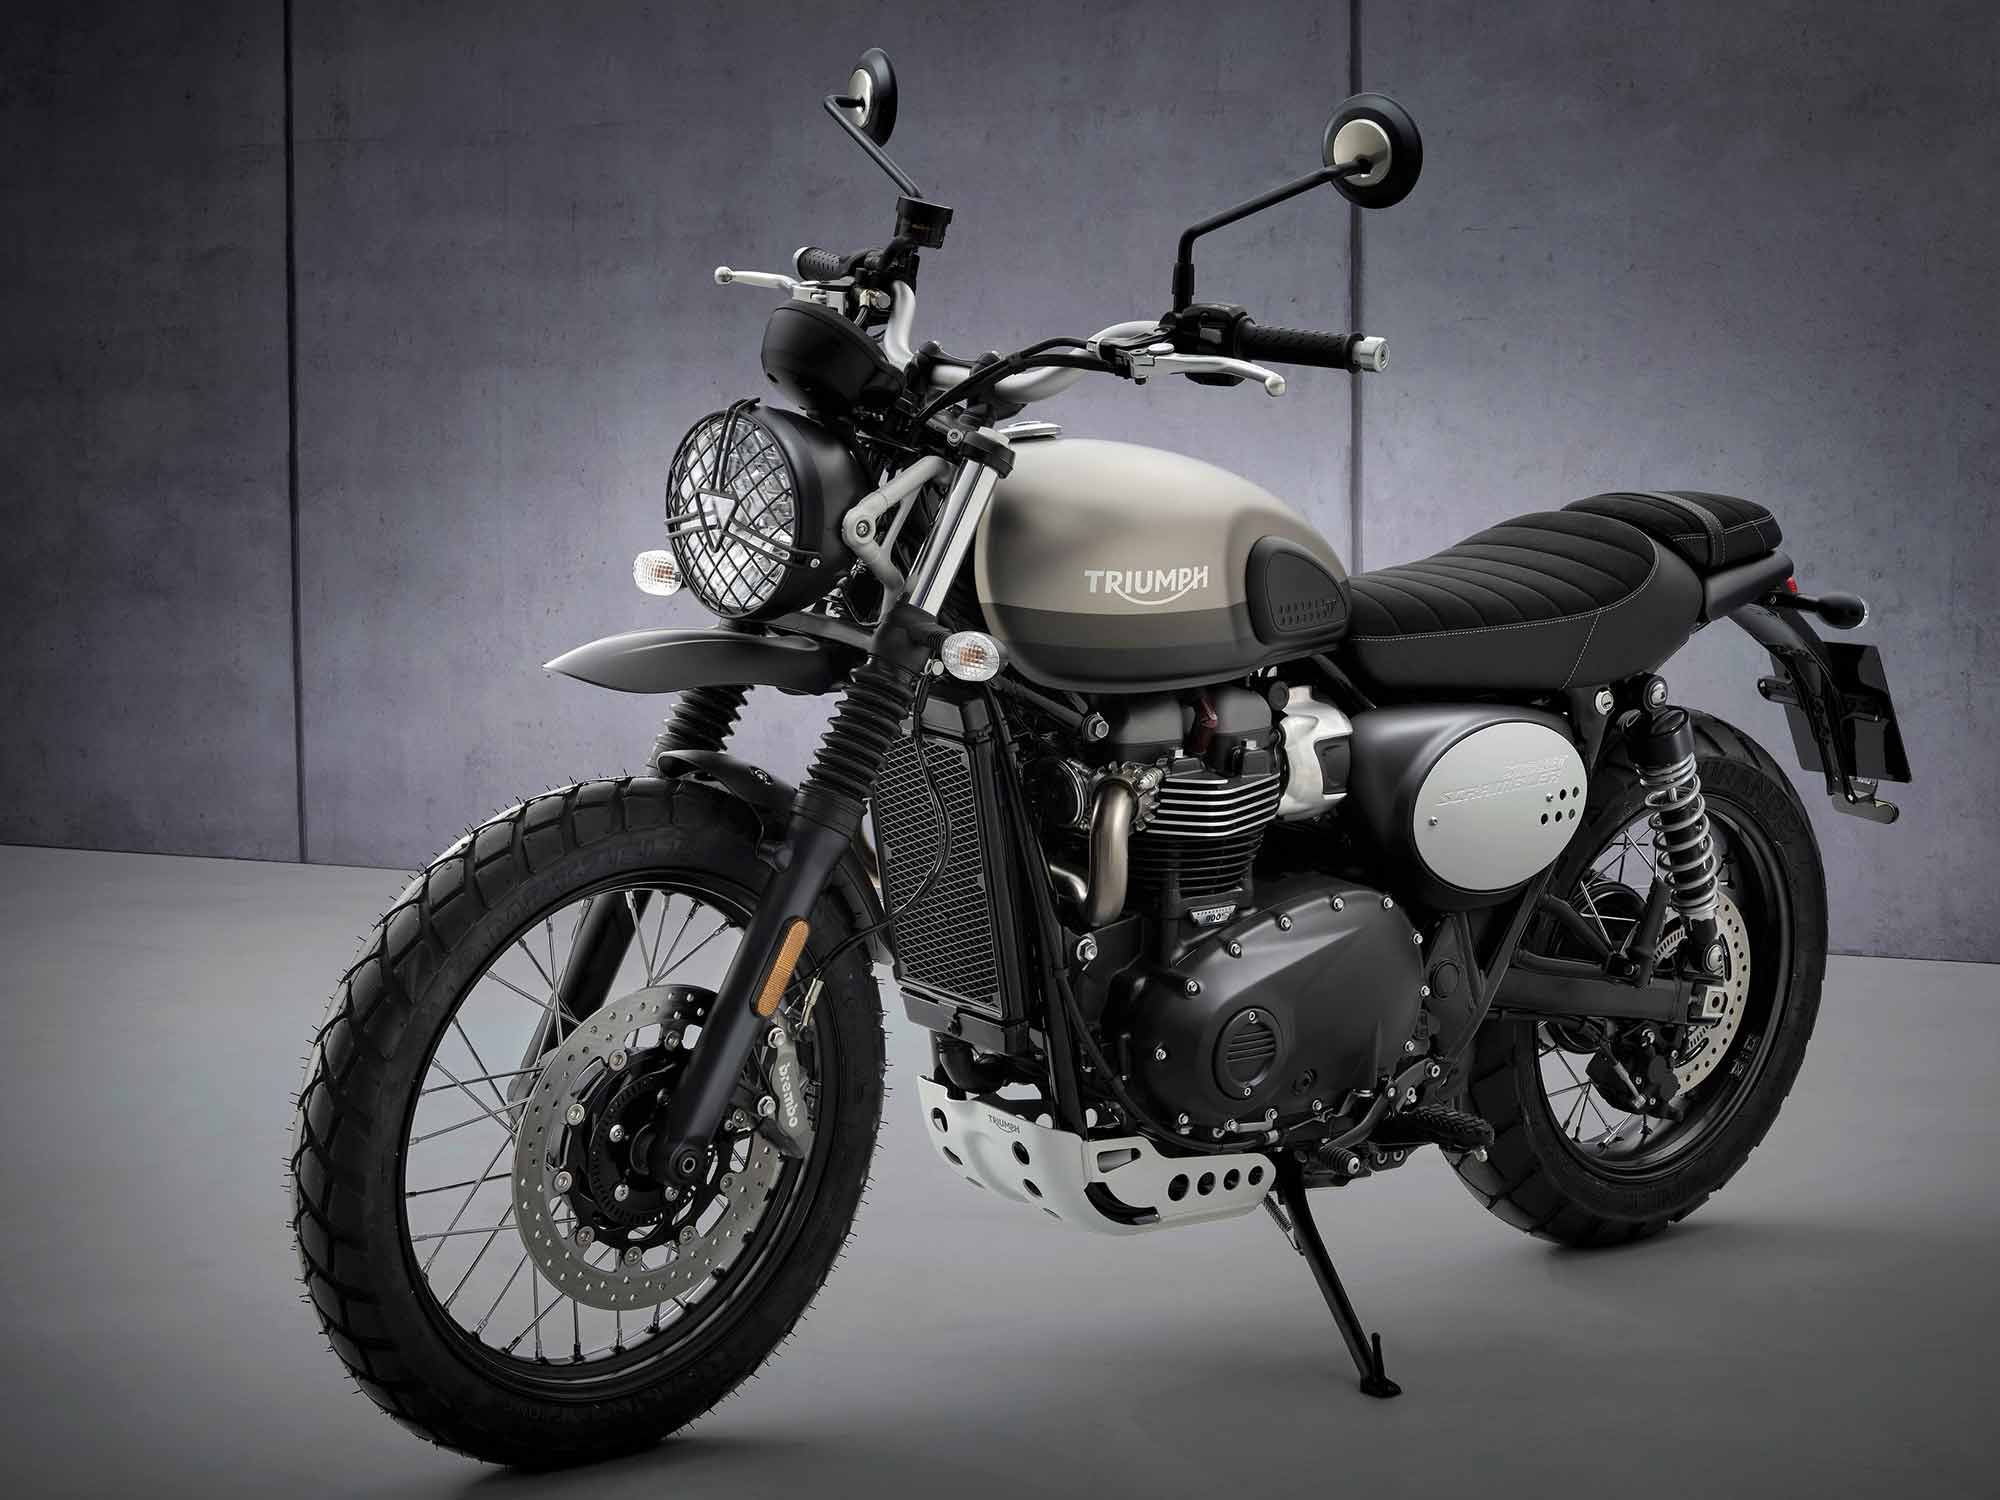 2022 Triumph Street Scrambler and Scrambler Sandstorm First Look